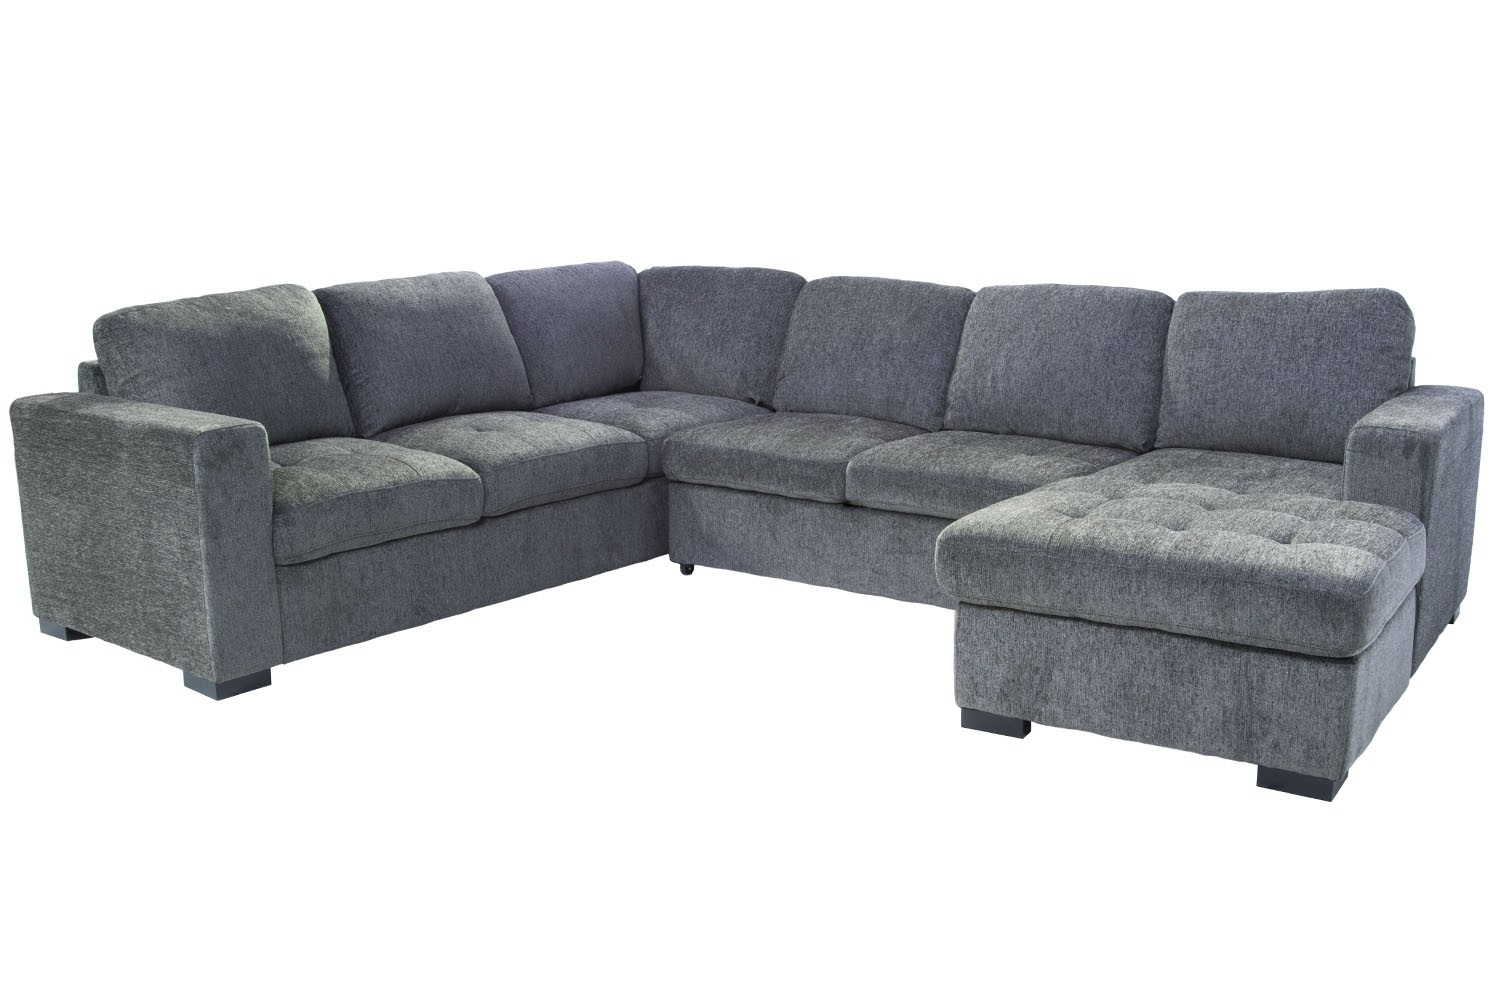 Sectional Sofas | Save Mor Online And In Store In Aspen 2 Piece Sectionals With Raf Chaise (View 6 of 25)